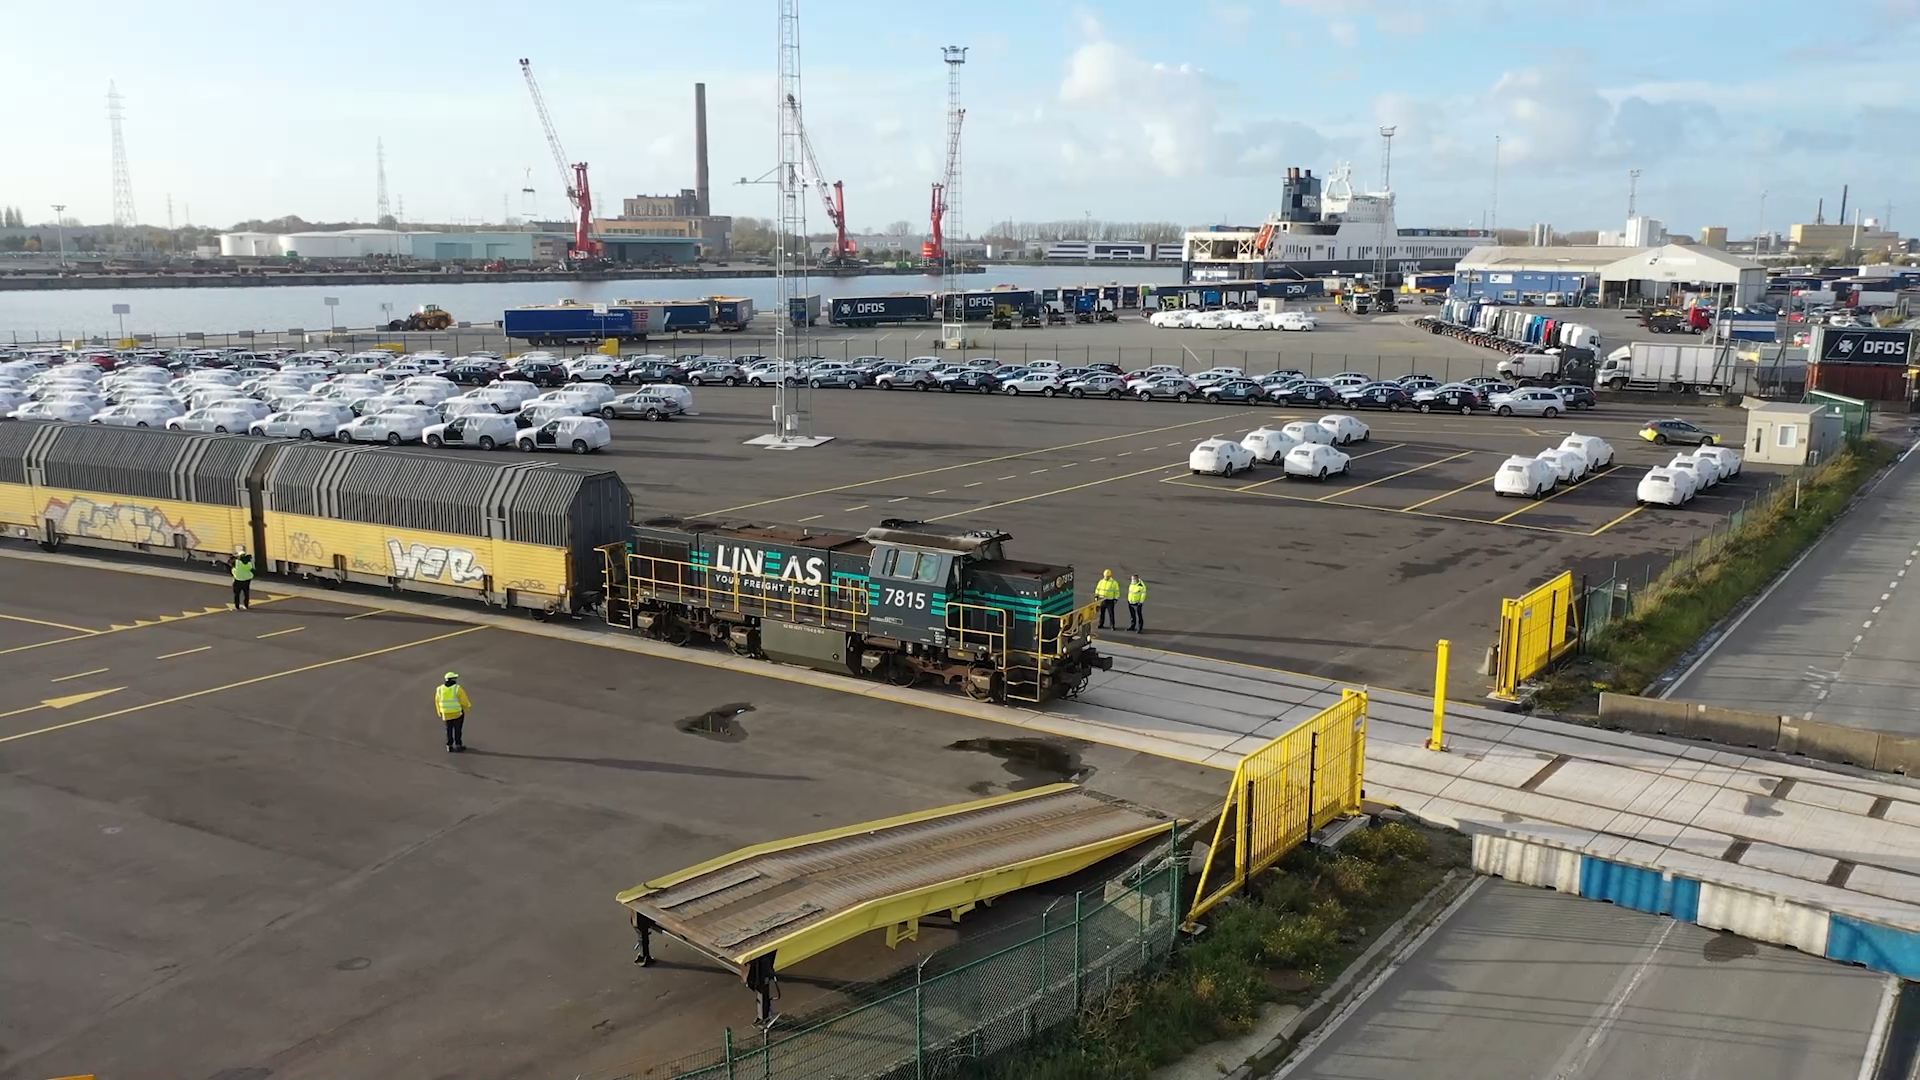 Volvo cars being loaded onto Lineas train to be transported to the European Hinterland and China.